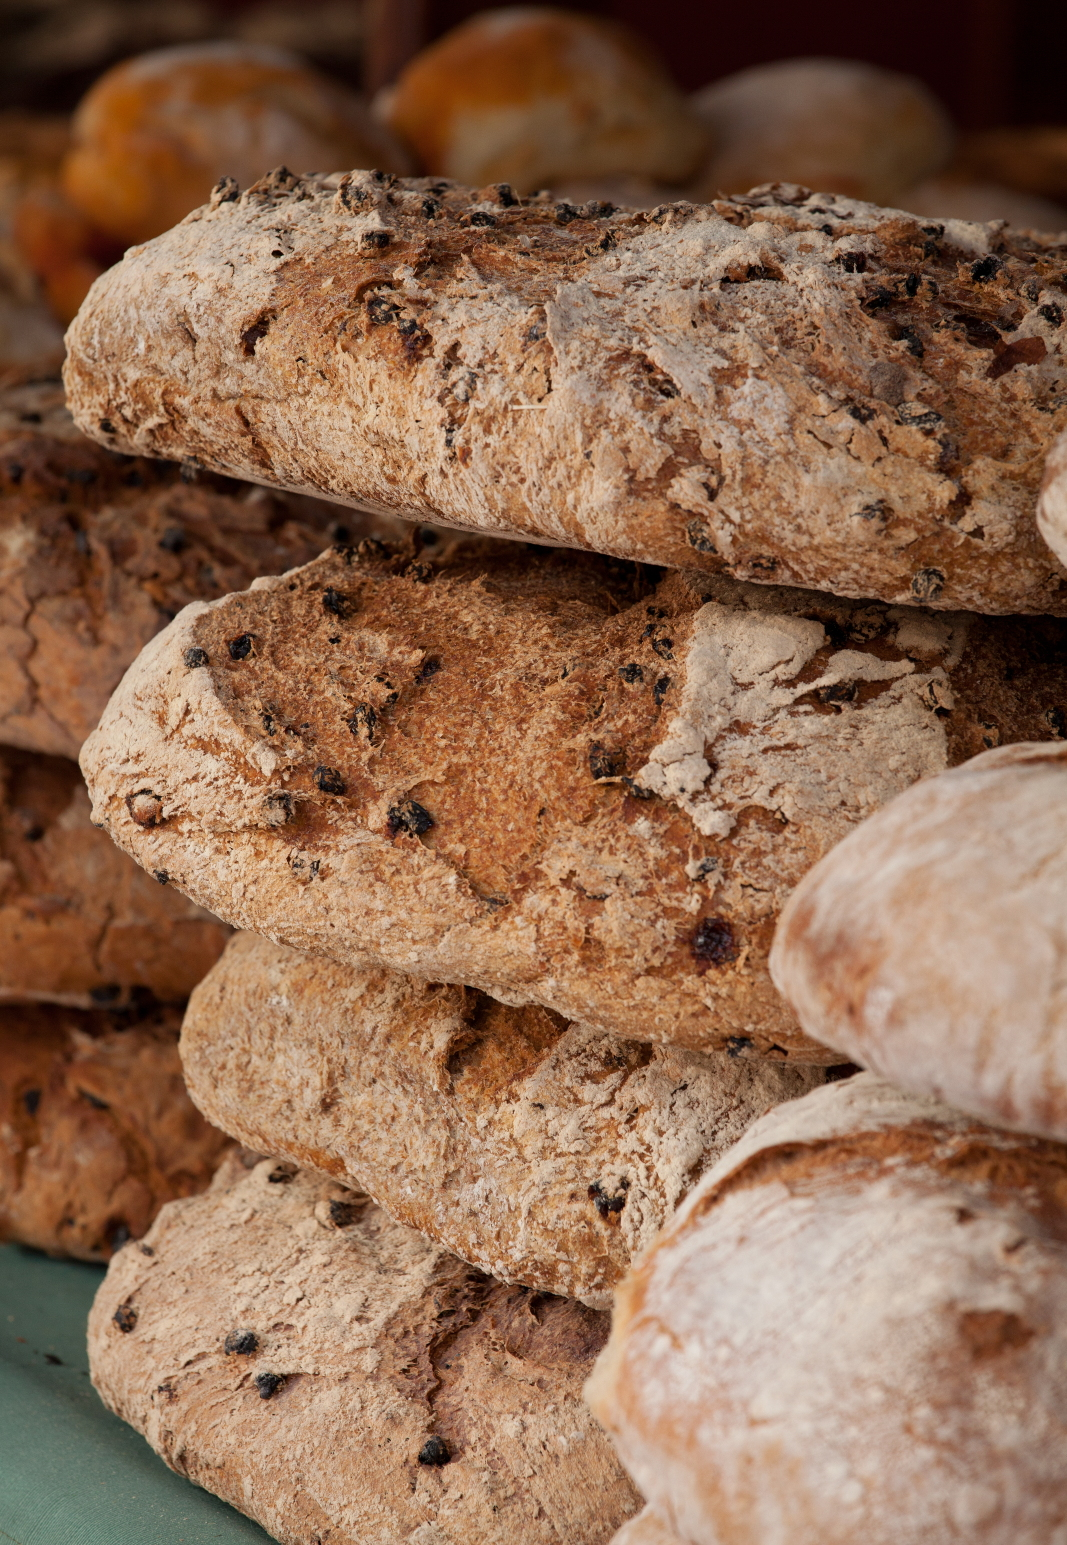 Medieval Rye Bread - photo by Keith Williamson under CC BY 2.0